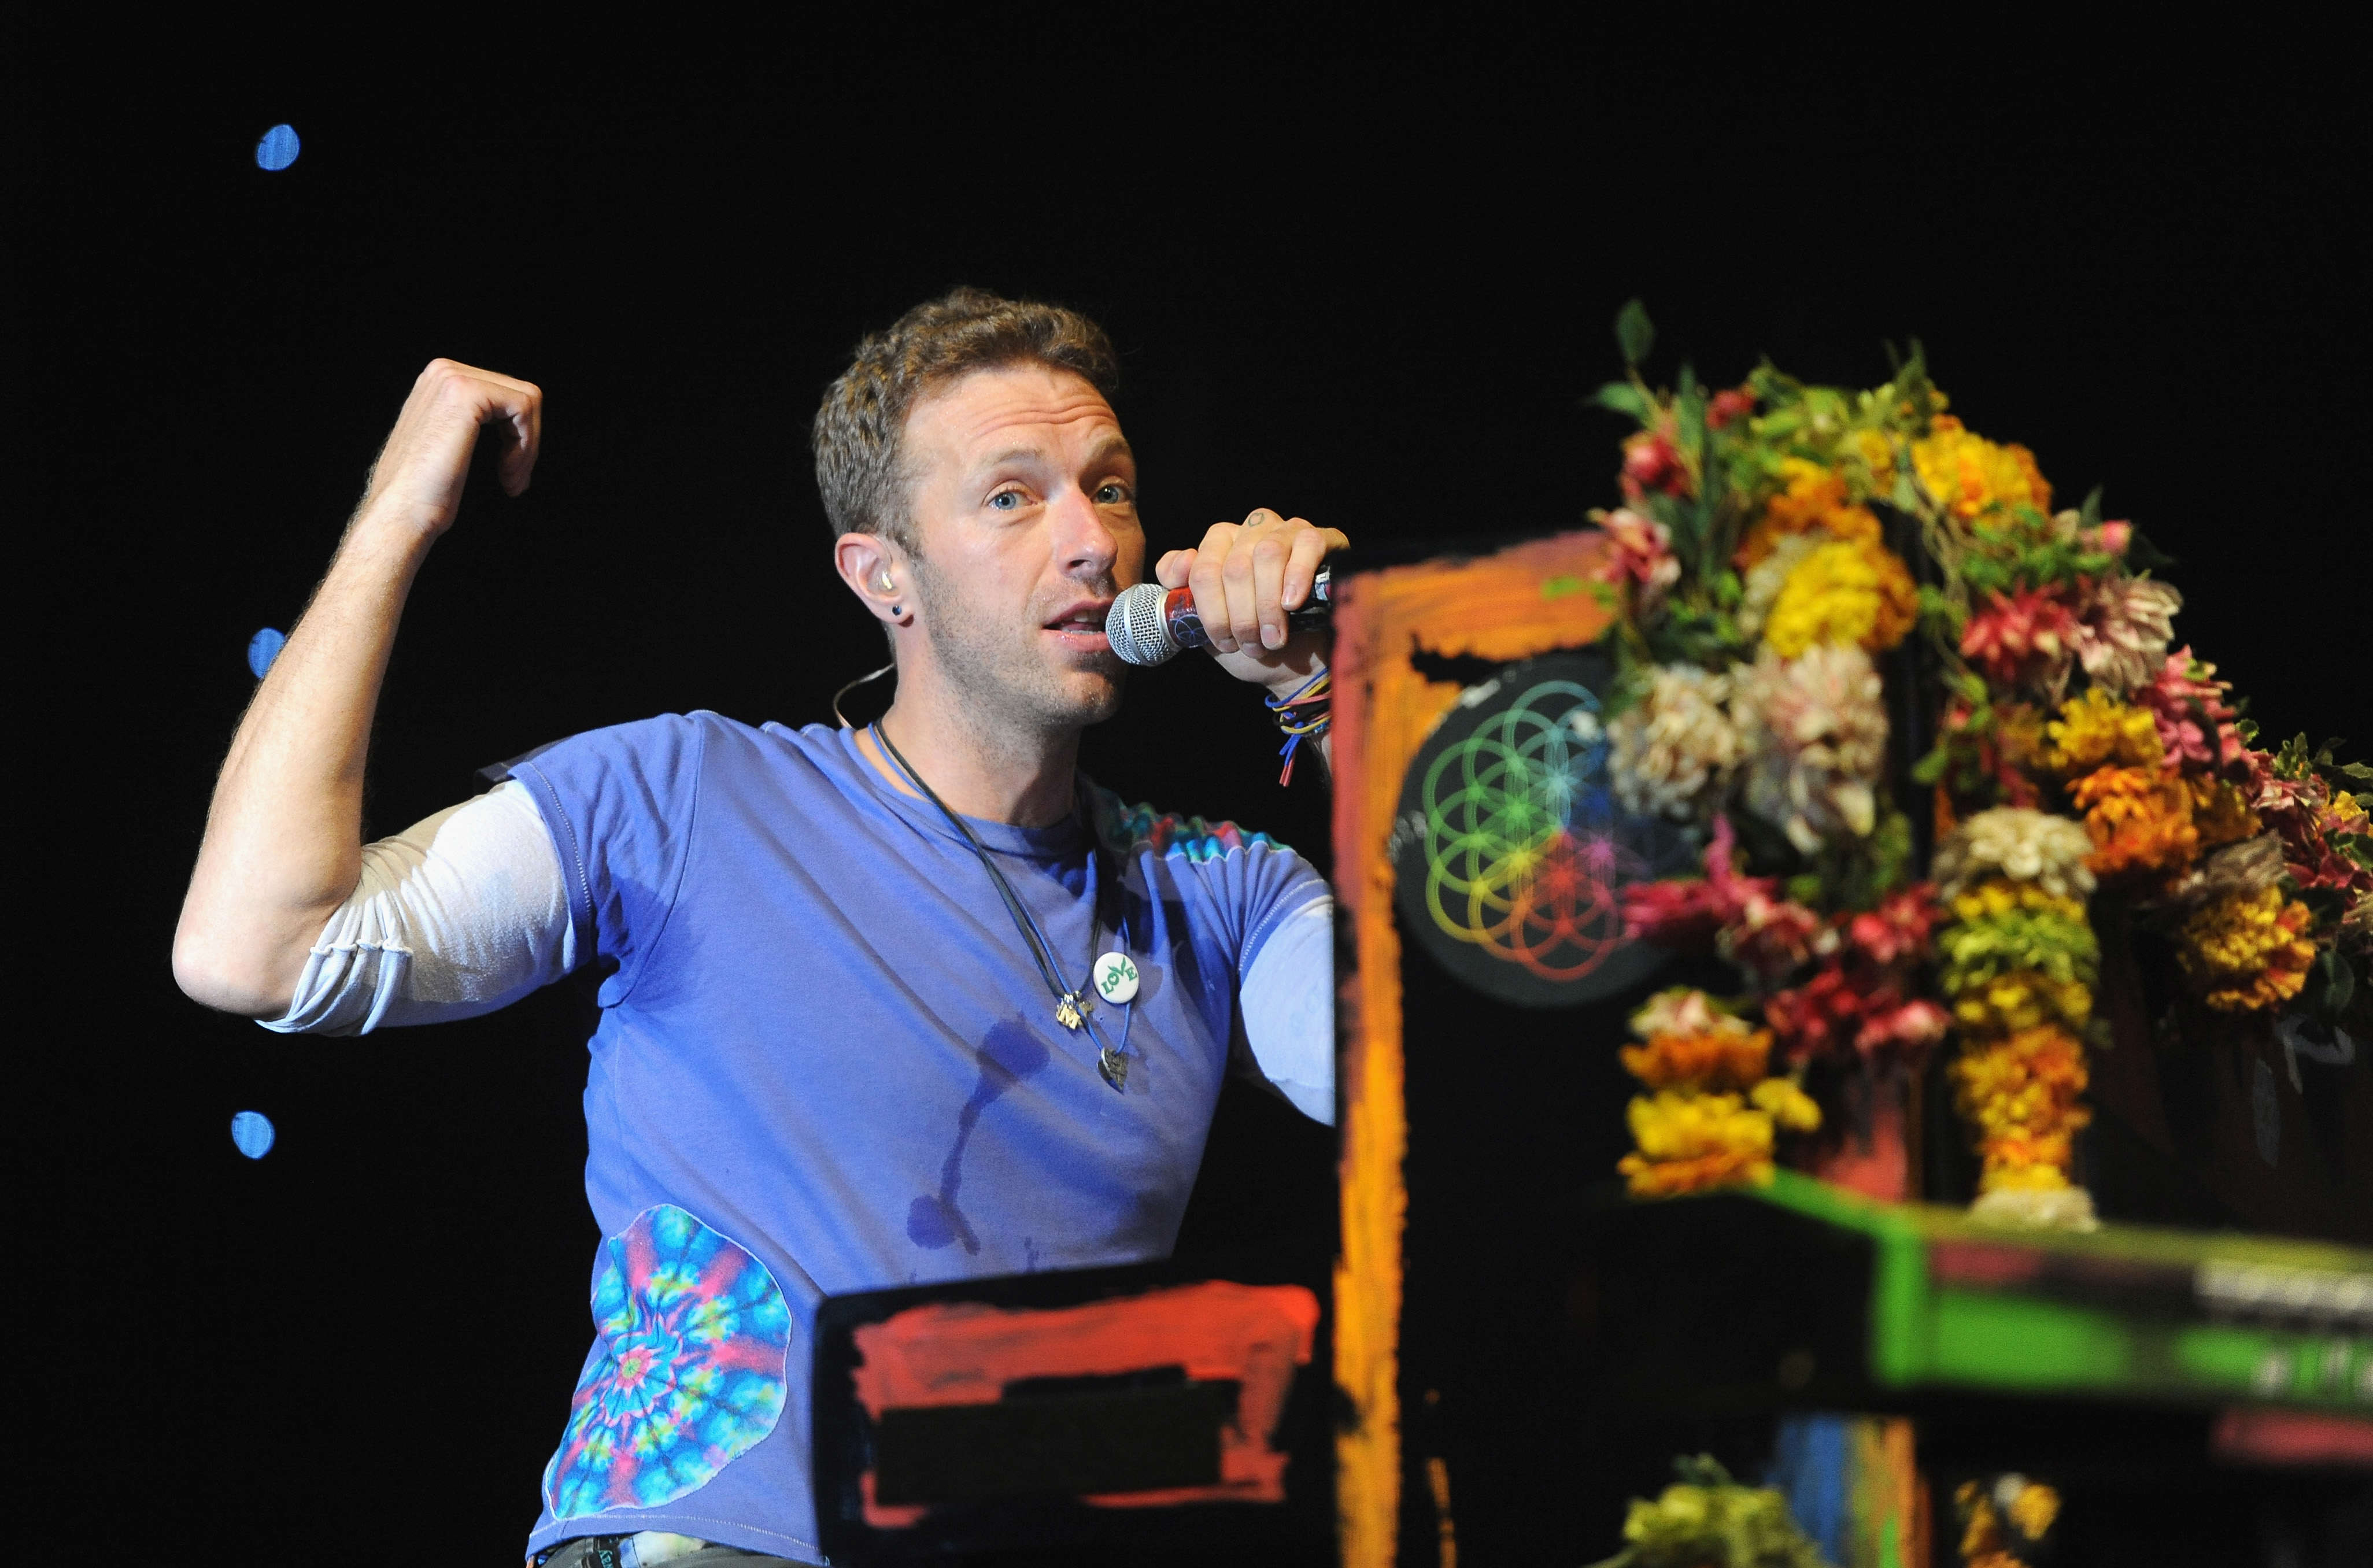 Heres What Chris Martin Did When A Fan Begged Him For Sex GettyImages 543491684